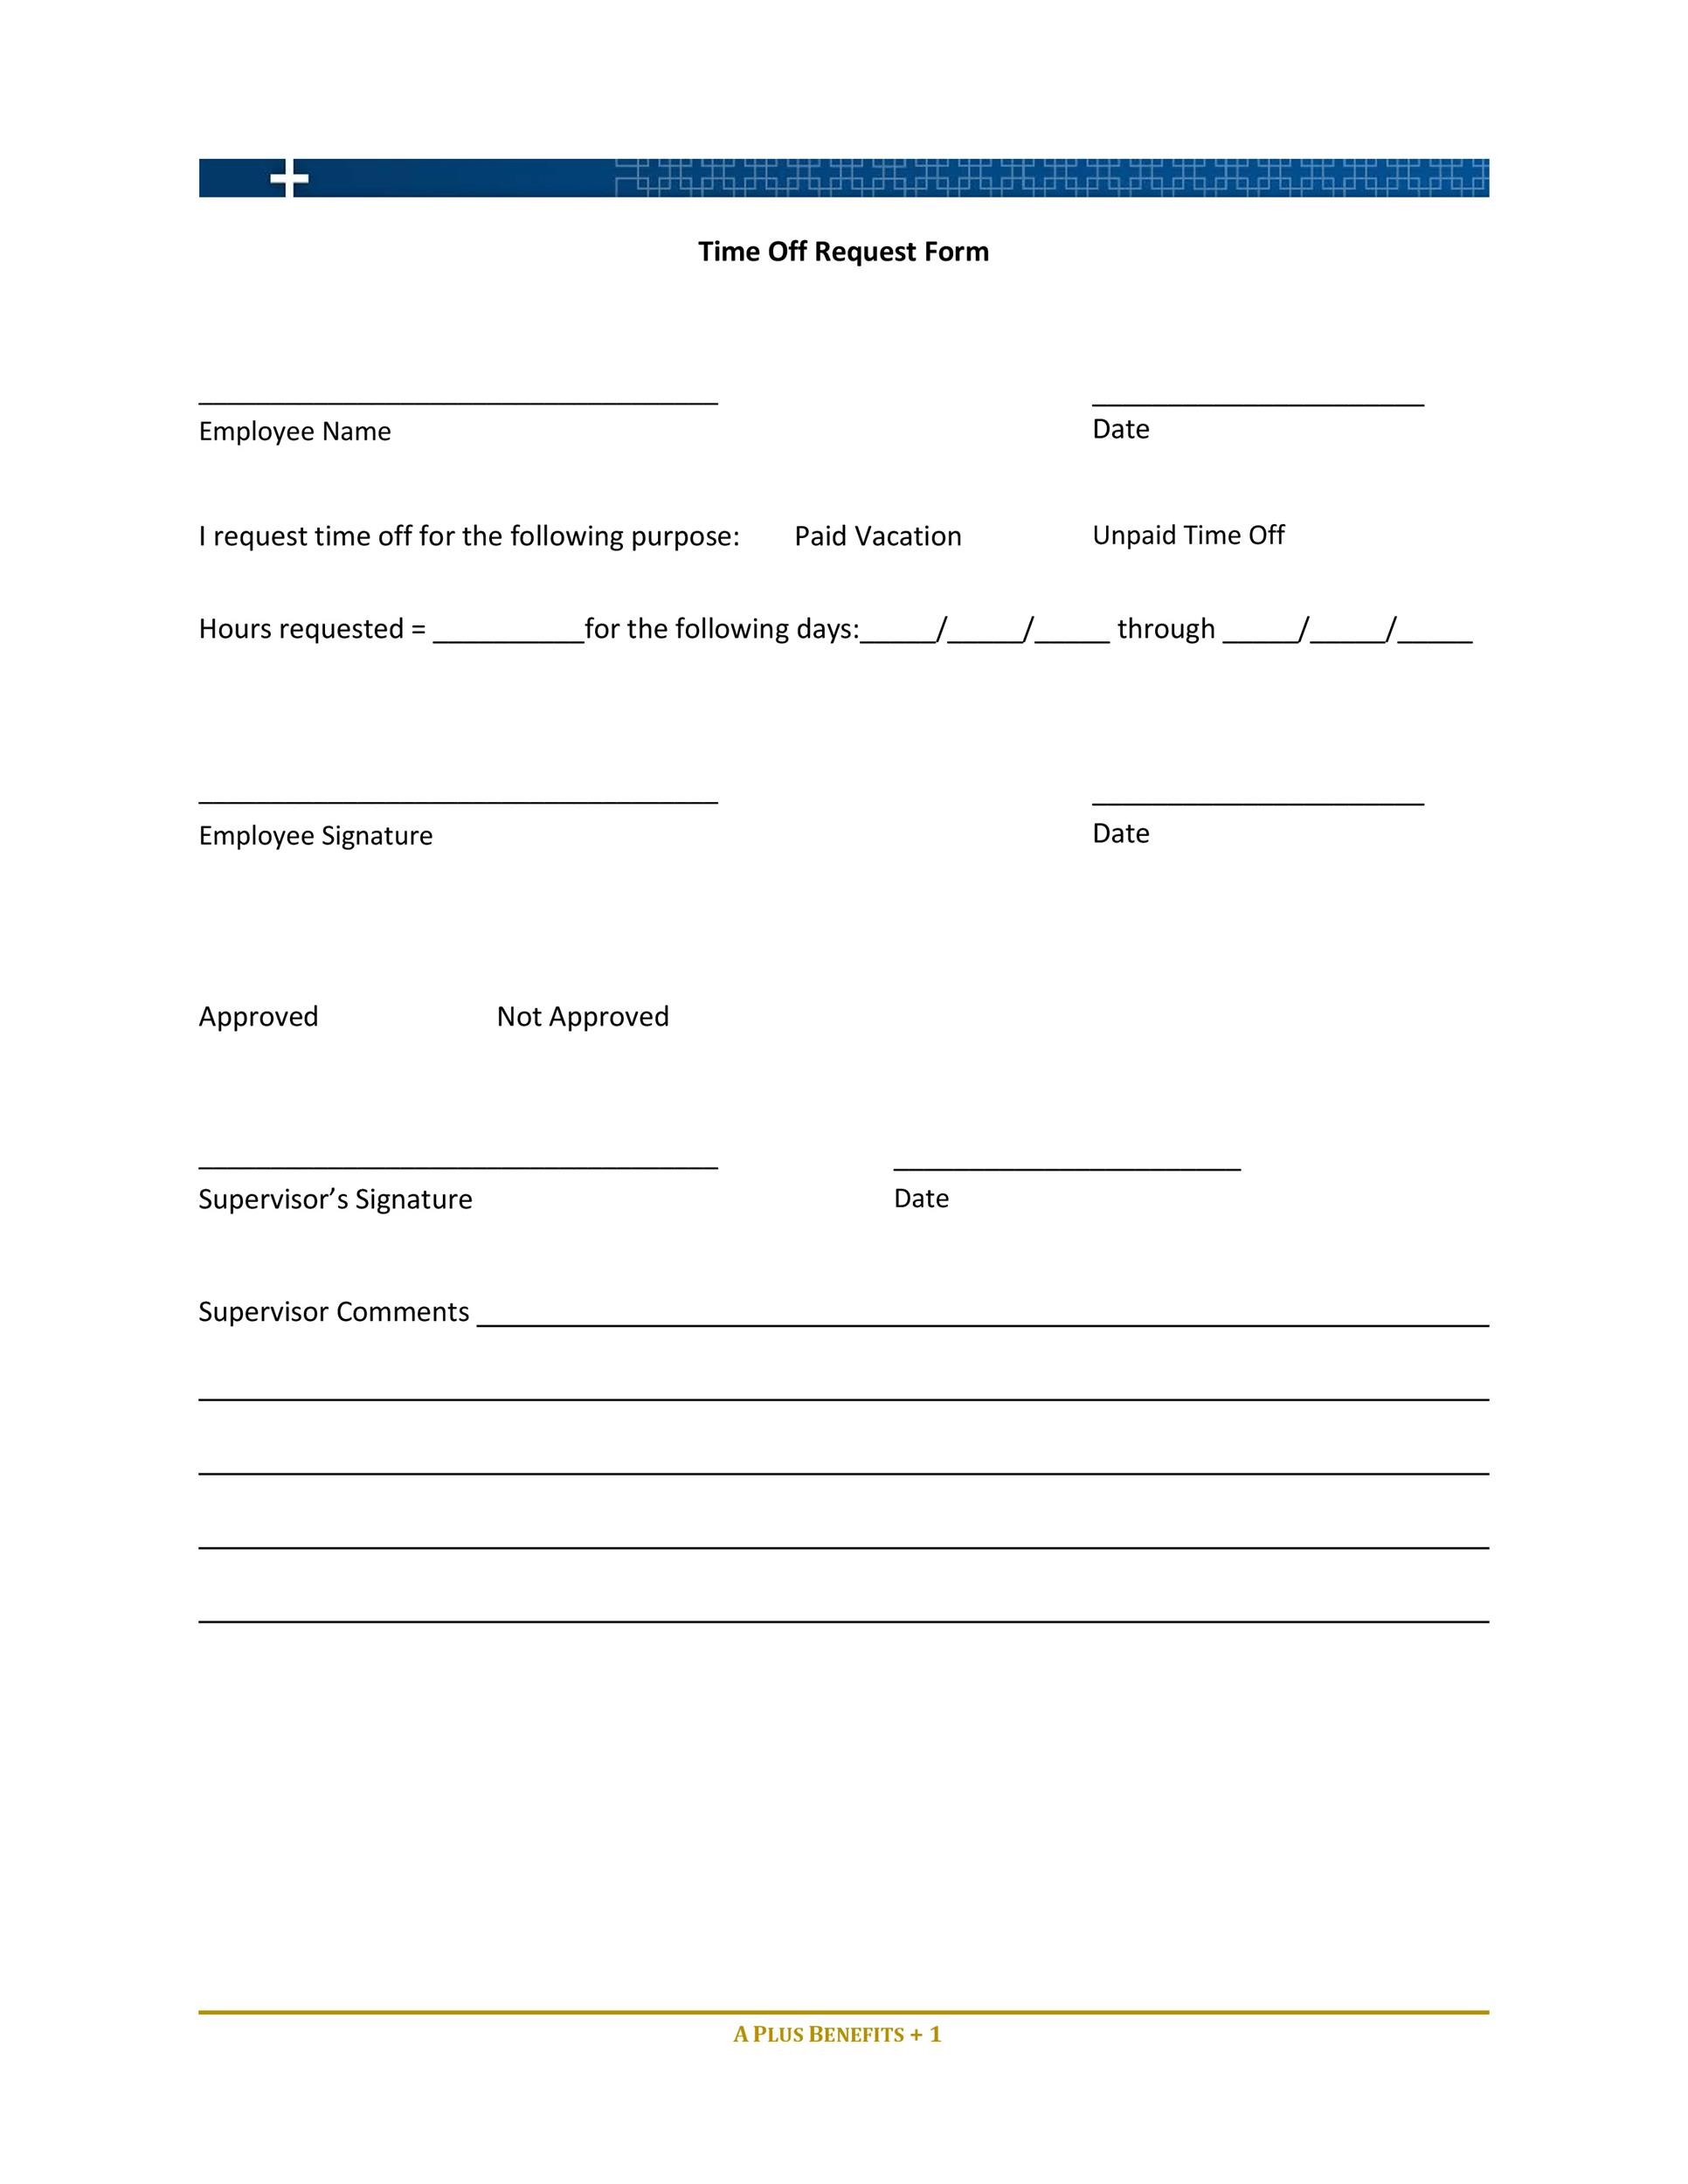 Free time off request form template 36